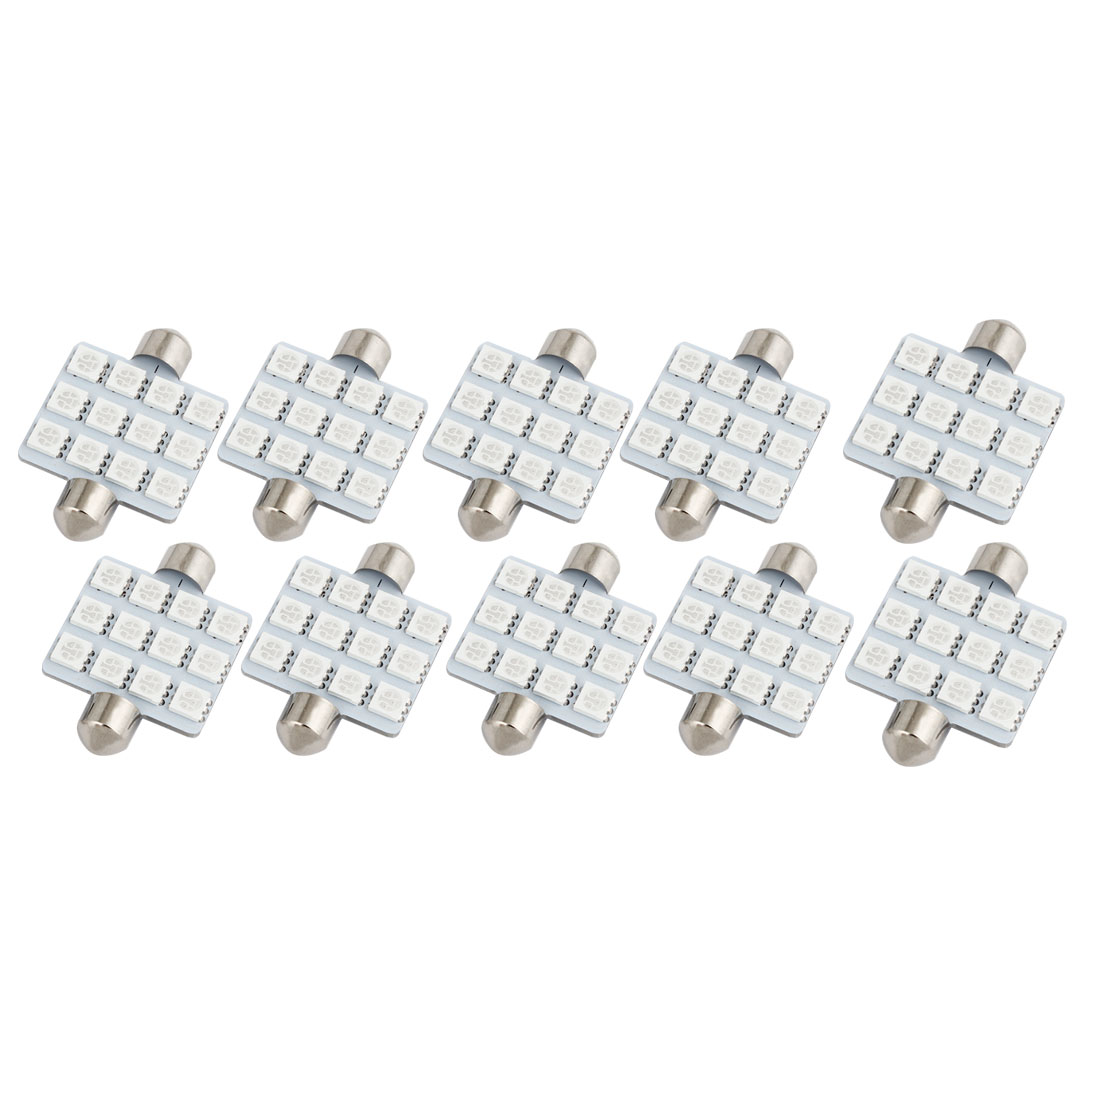 10PCS 41mm 12-LED 5050 Blue SMD Festoon Map Light Lamp 212-2 12844 Internal